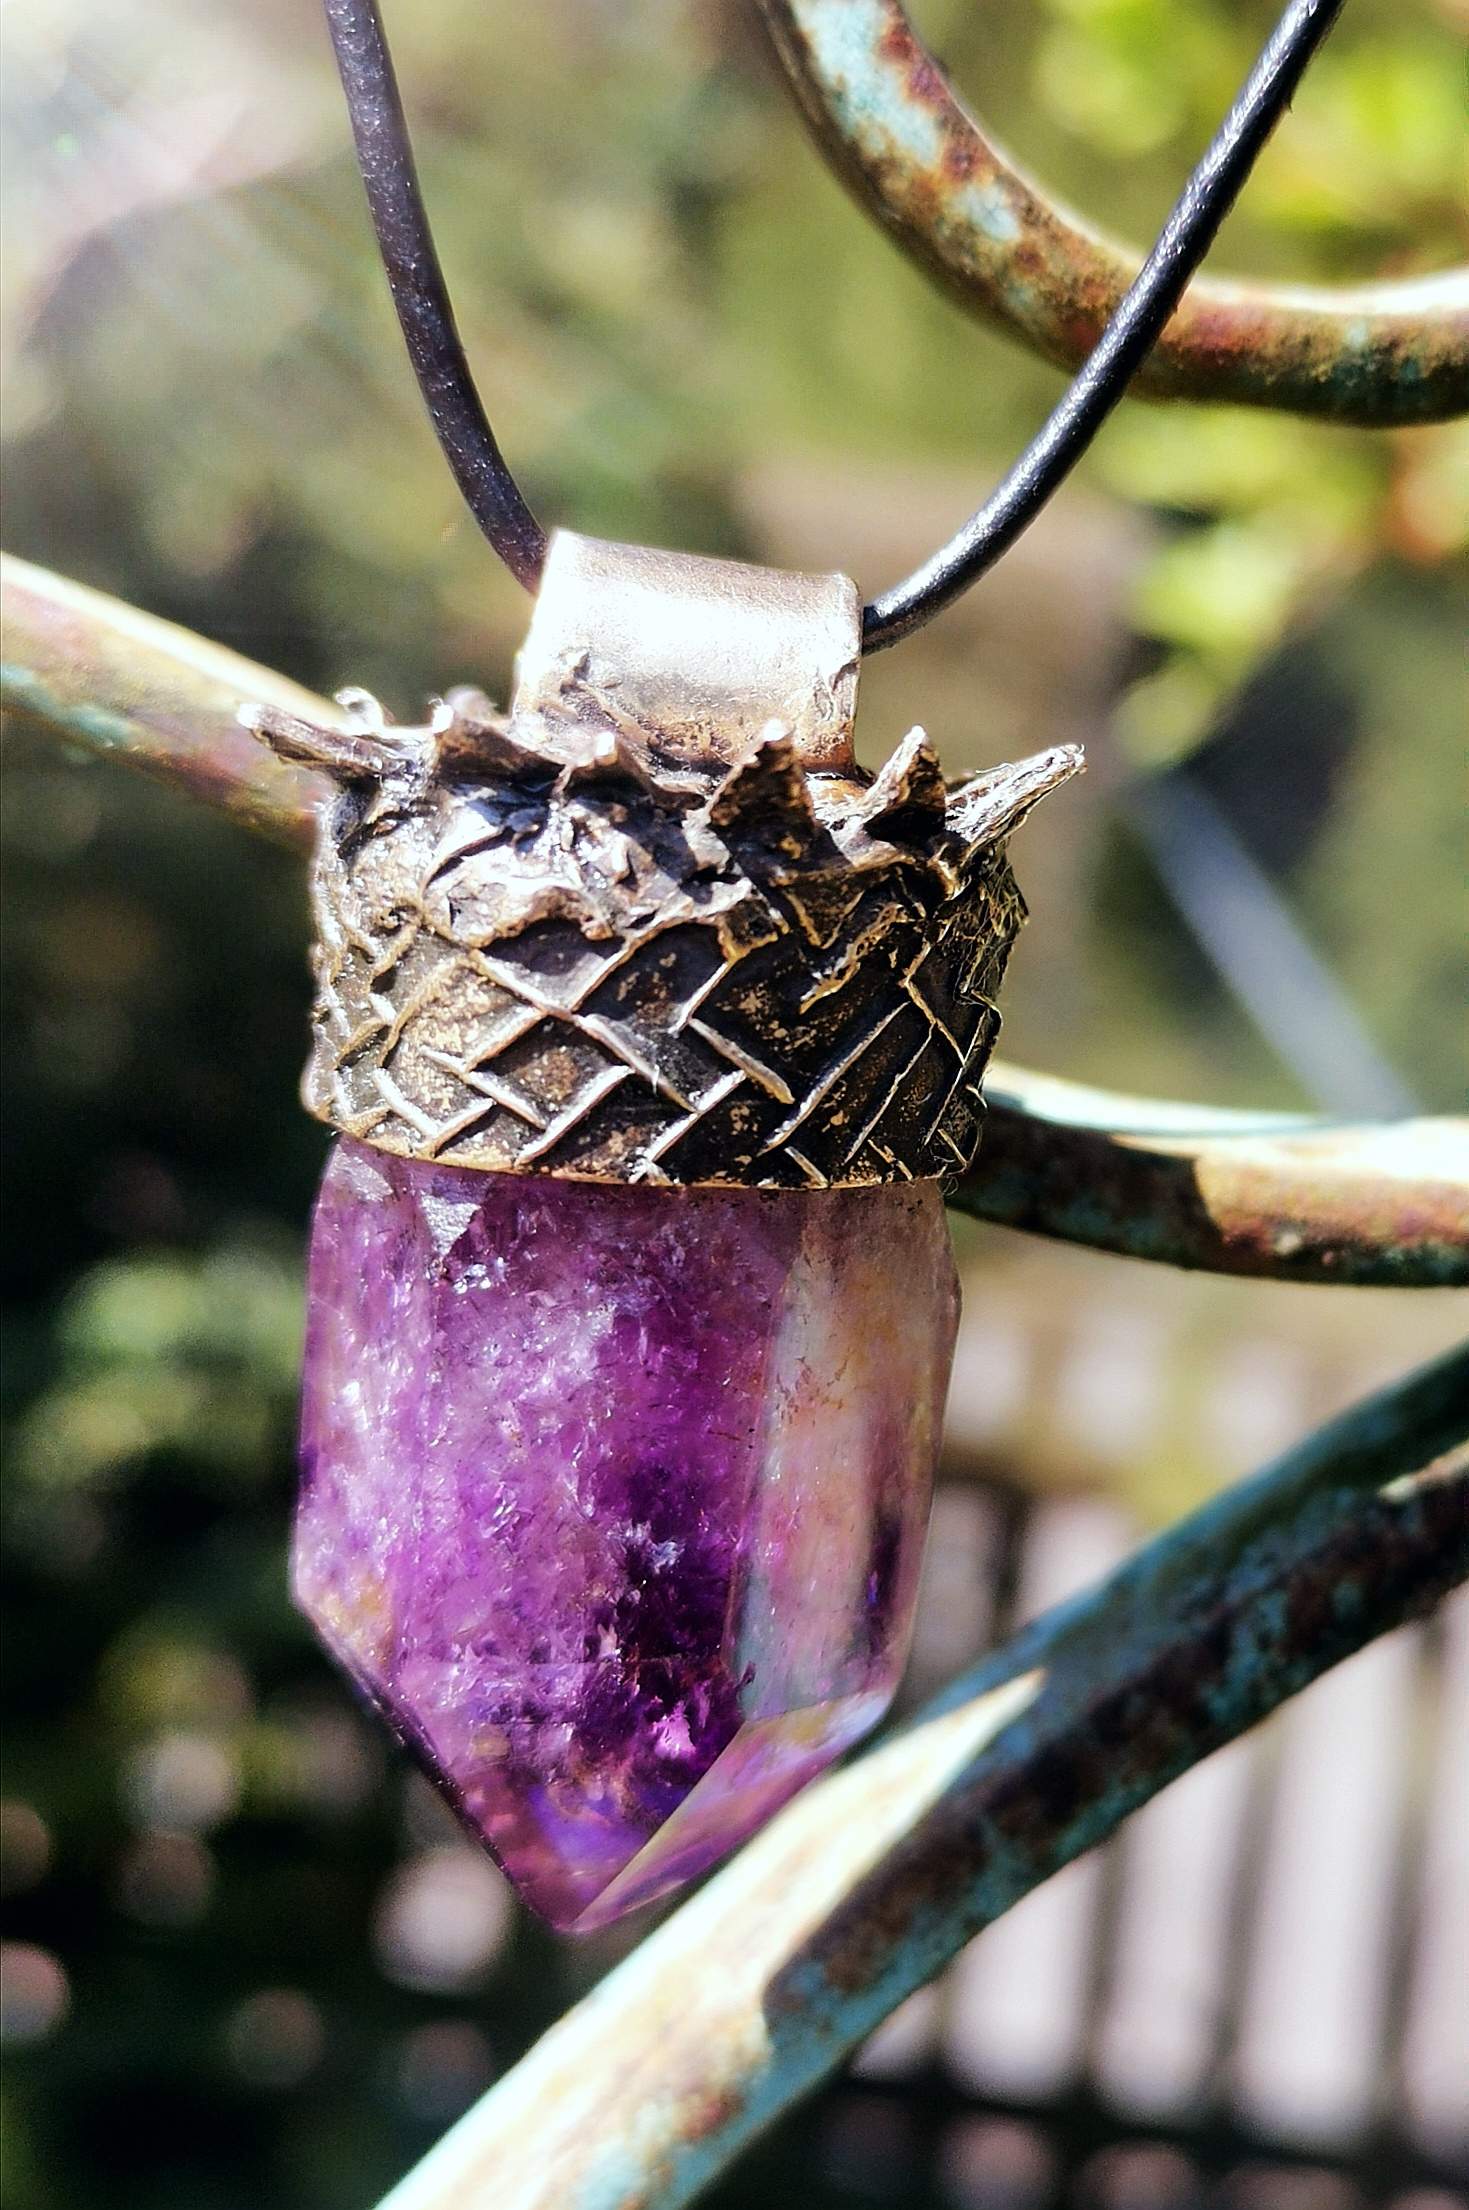 Amethyst-Spitze in Goldbronze-Kappe